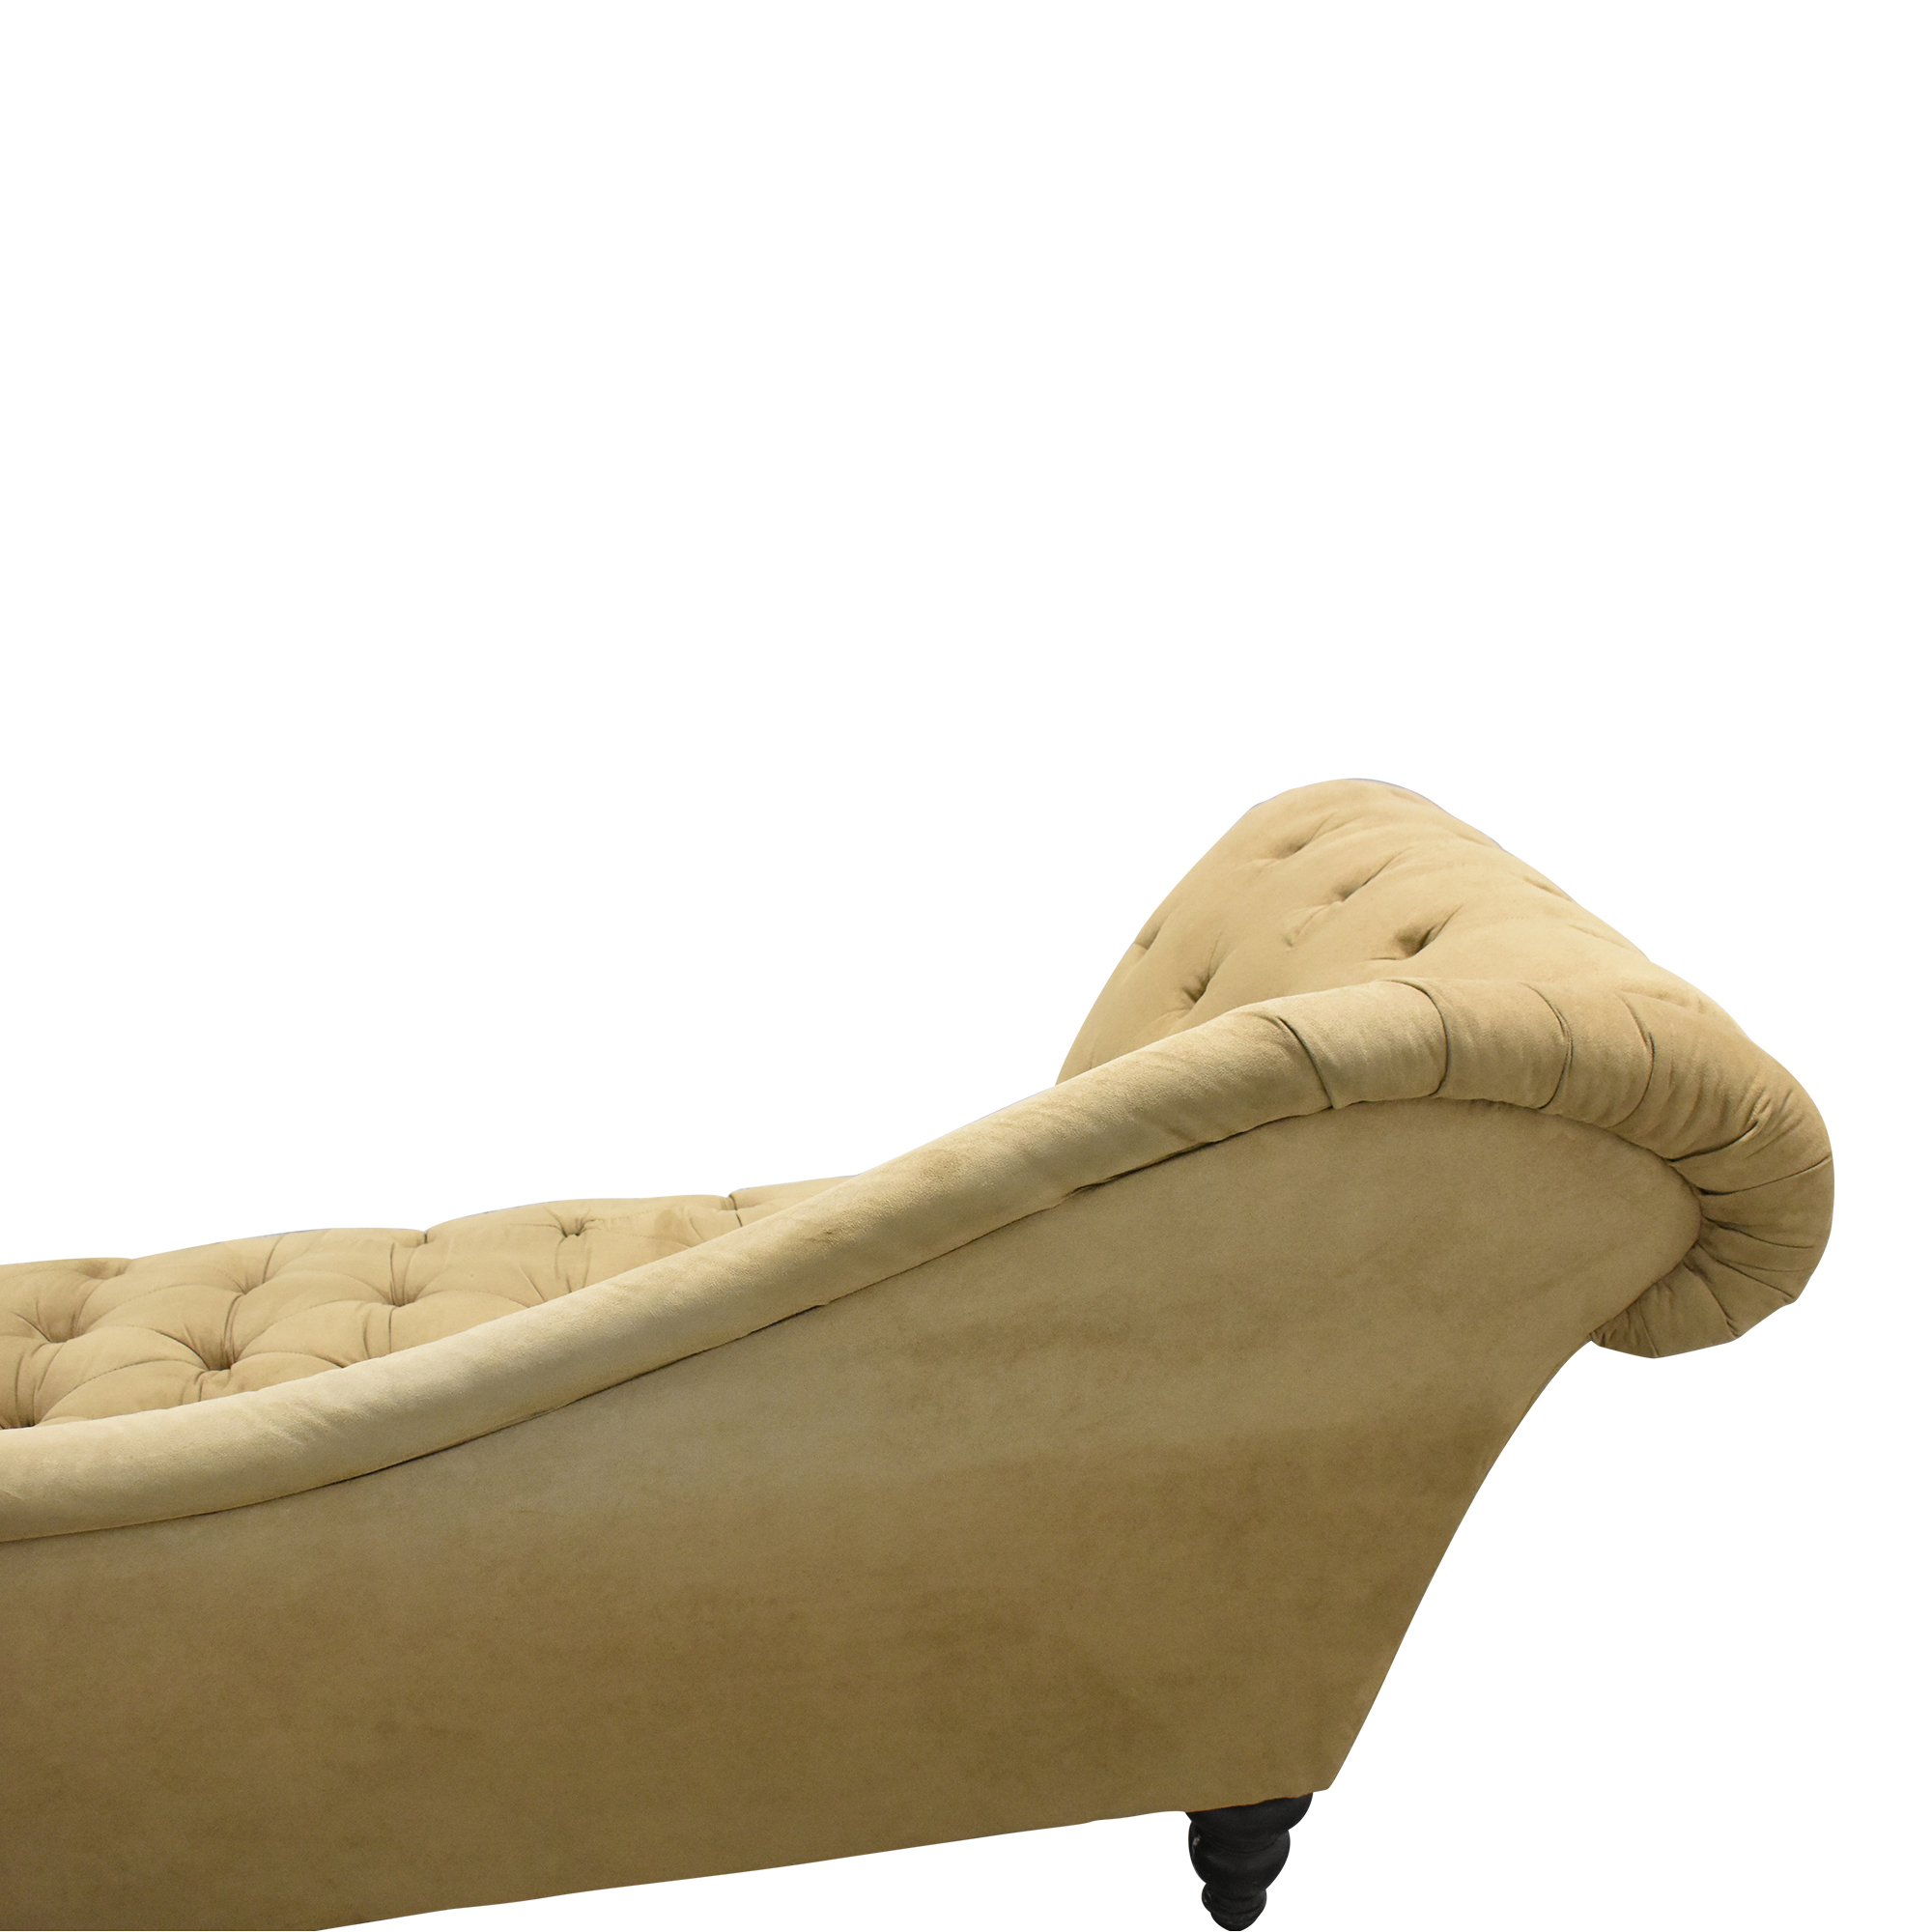 Tufted Chaise Lounge coupon